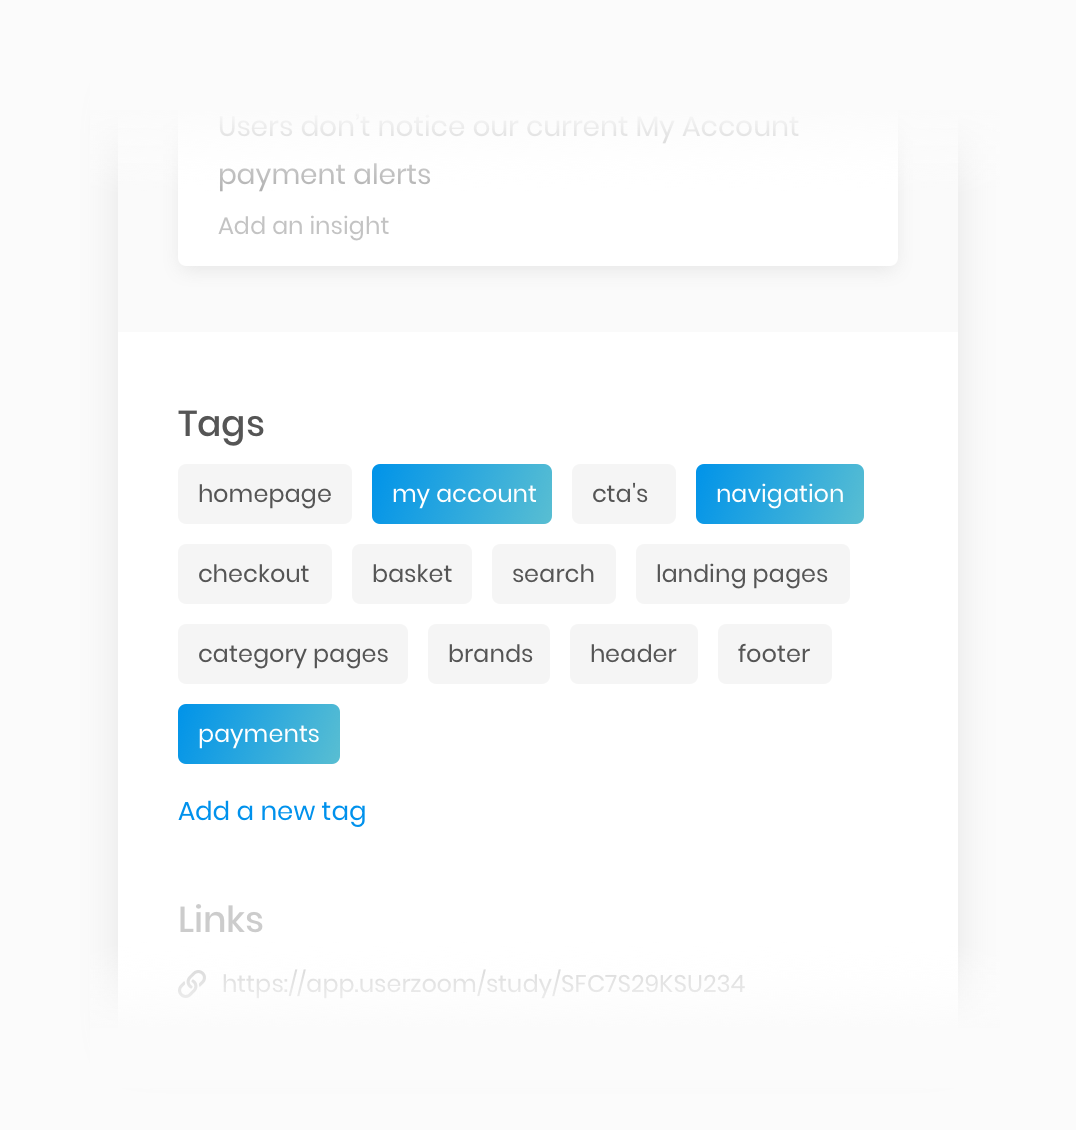 Group & Categorise with Tags | Insightful